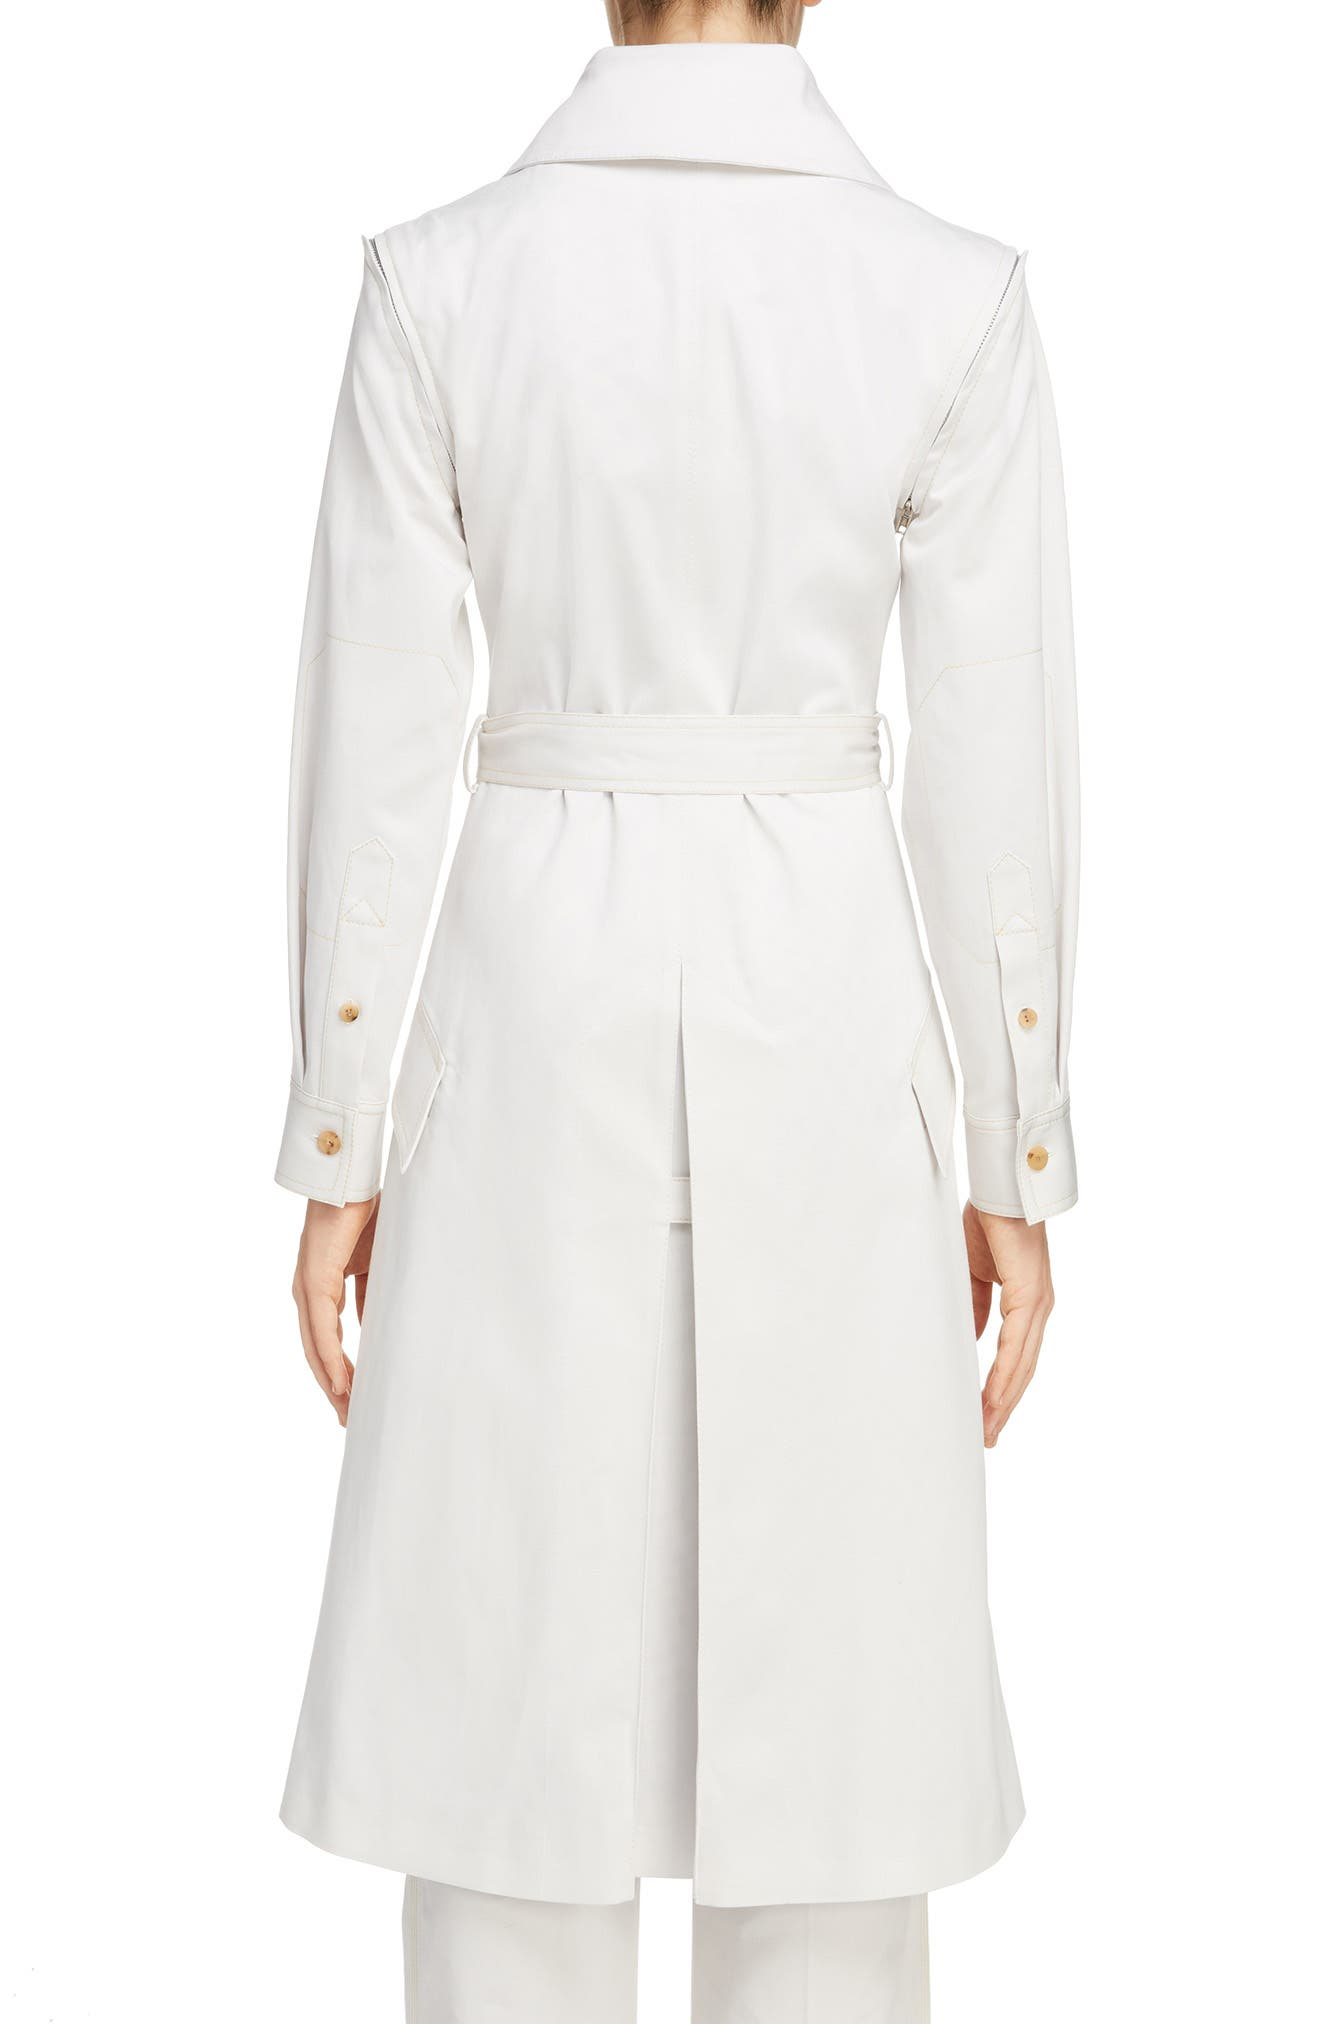 Olesia Removable Sleeve Belted Coat,                             Alternate thumbnail 2, color,                             900